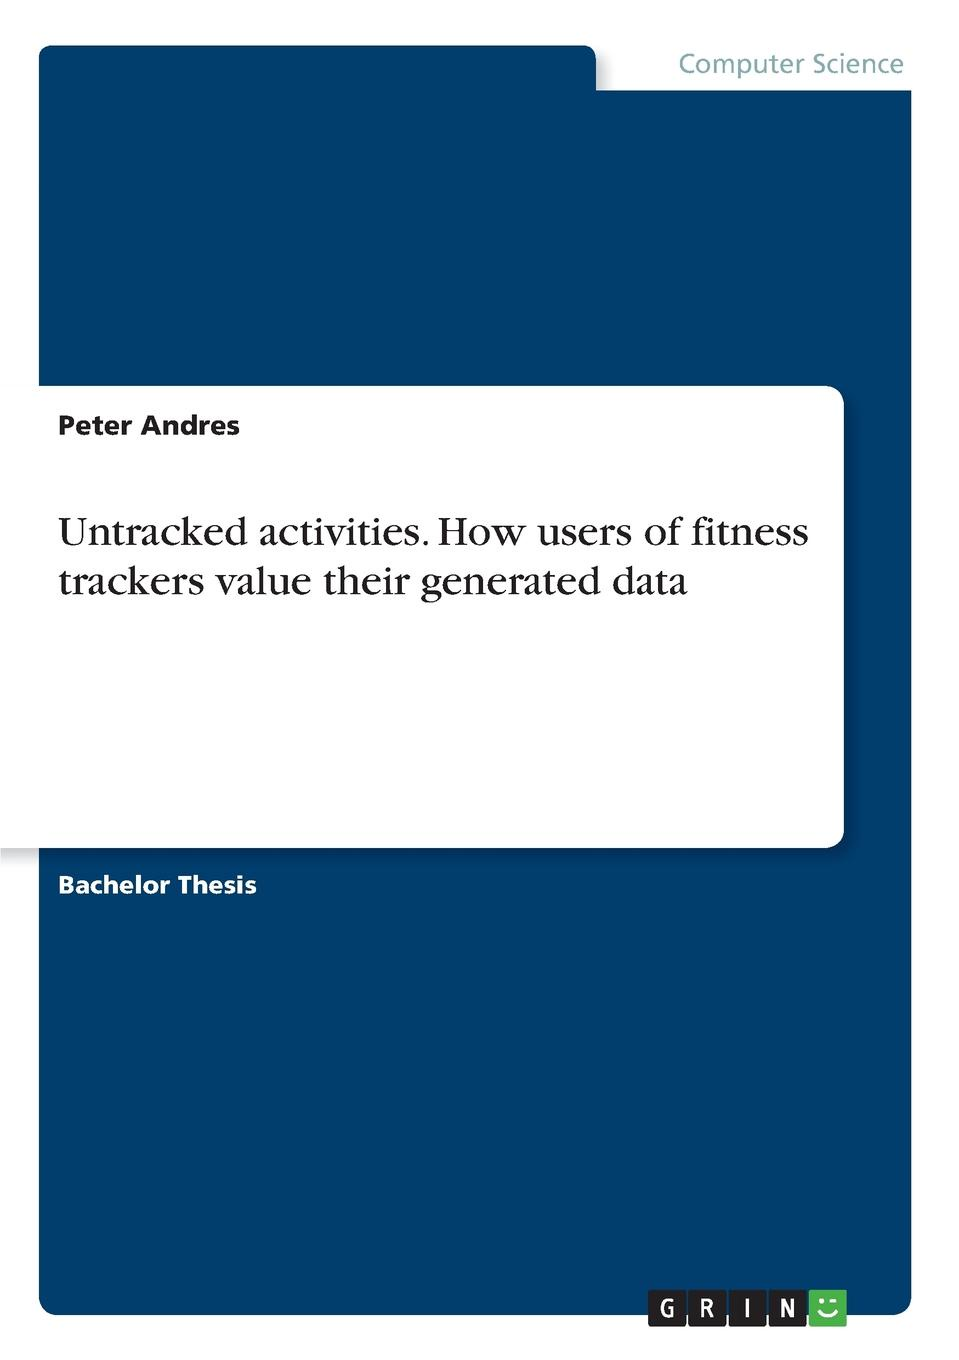 Peter Andres Untracked activities. How users of fitness trackers value their generated data yuhe chen how is frayed fiber generated during refining process